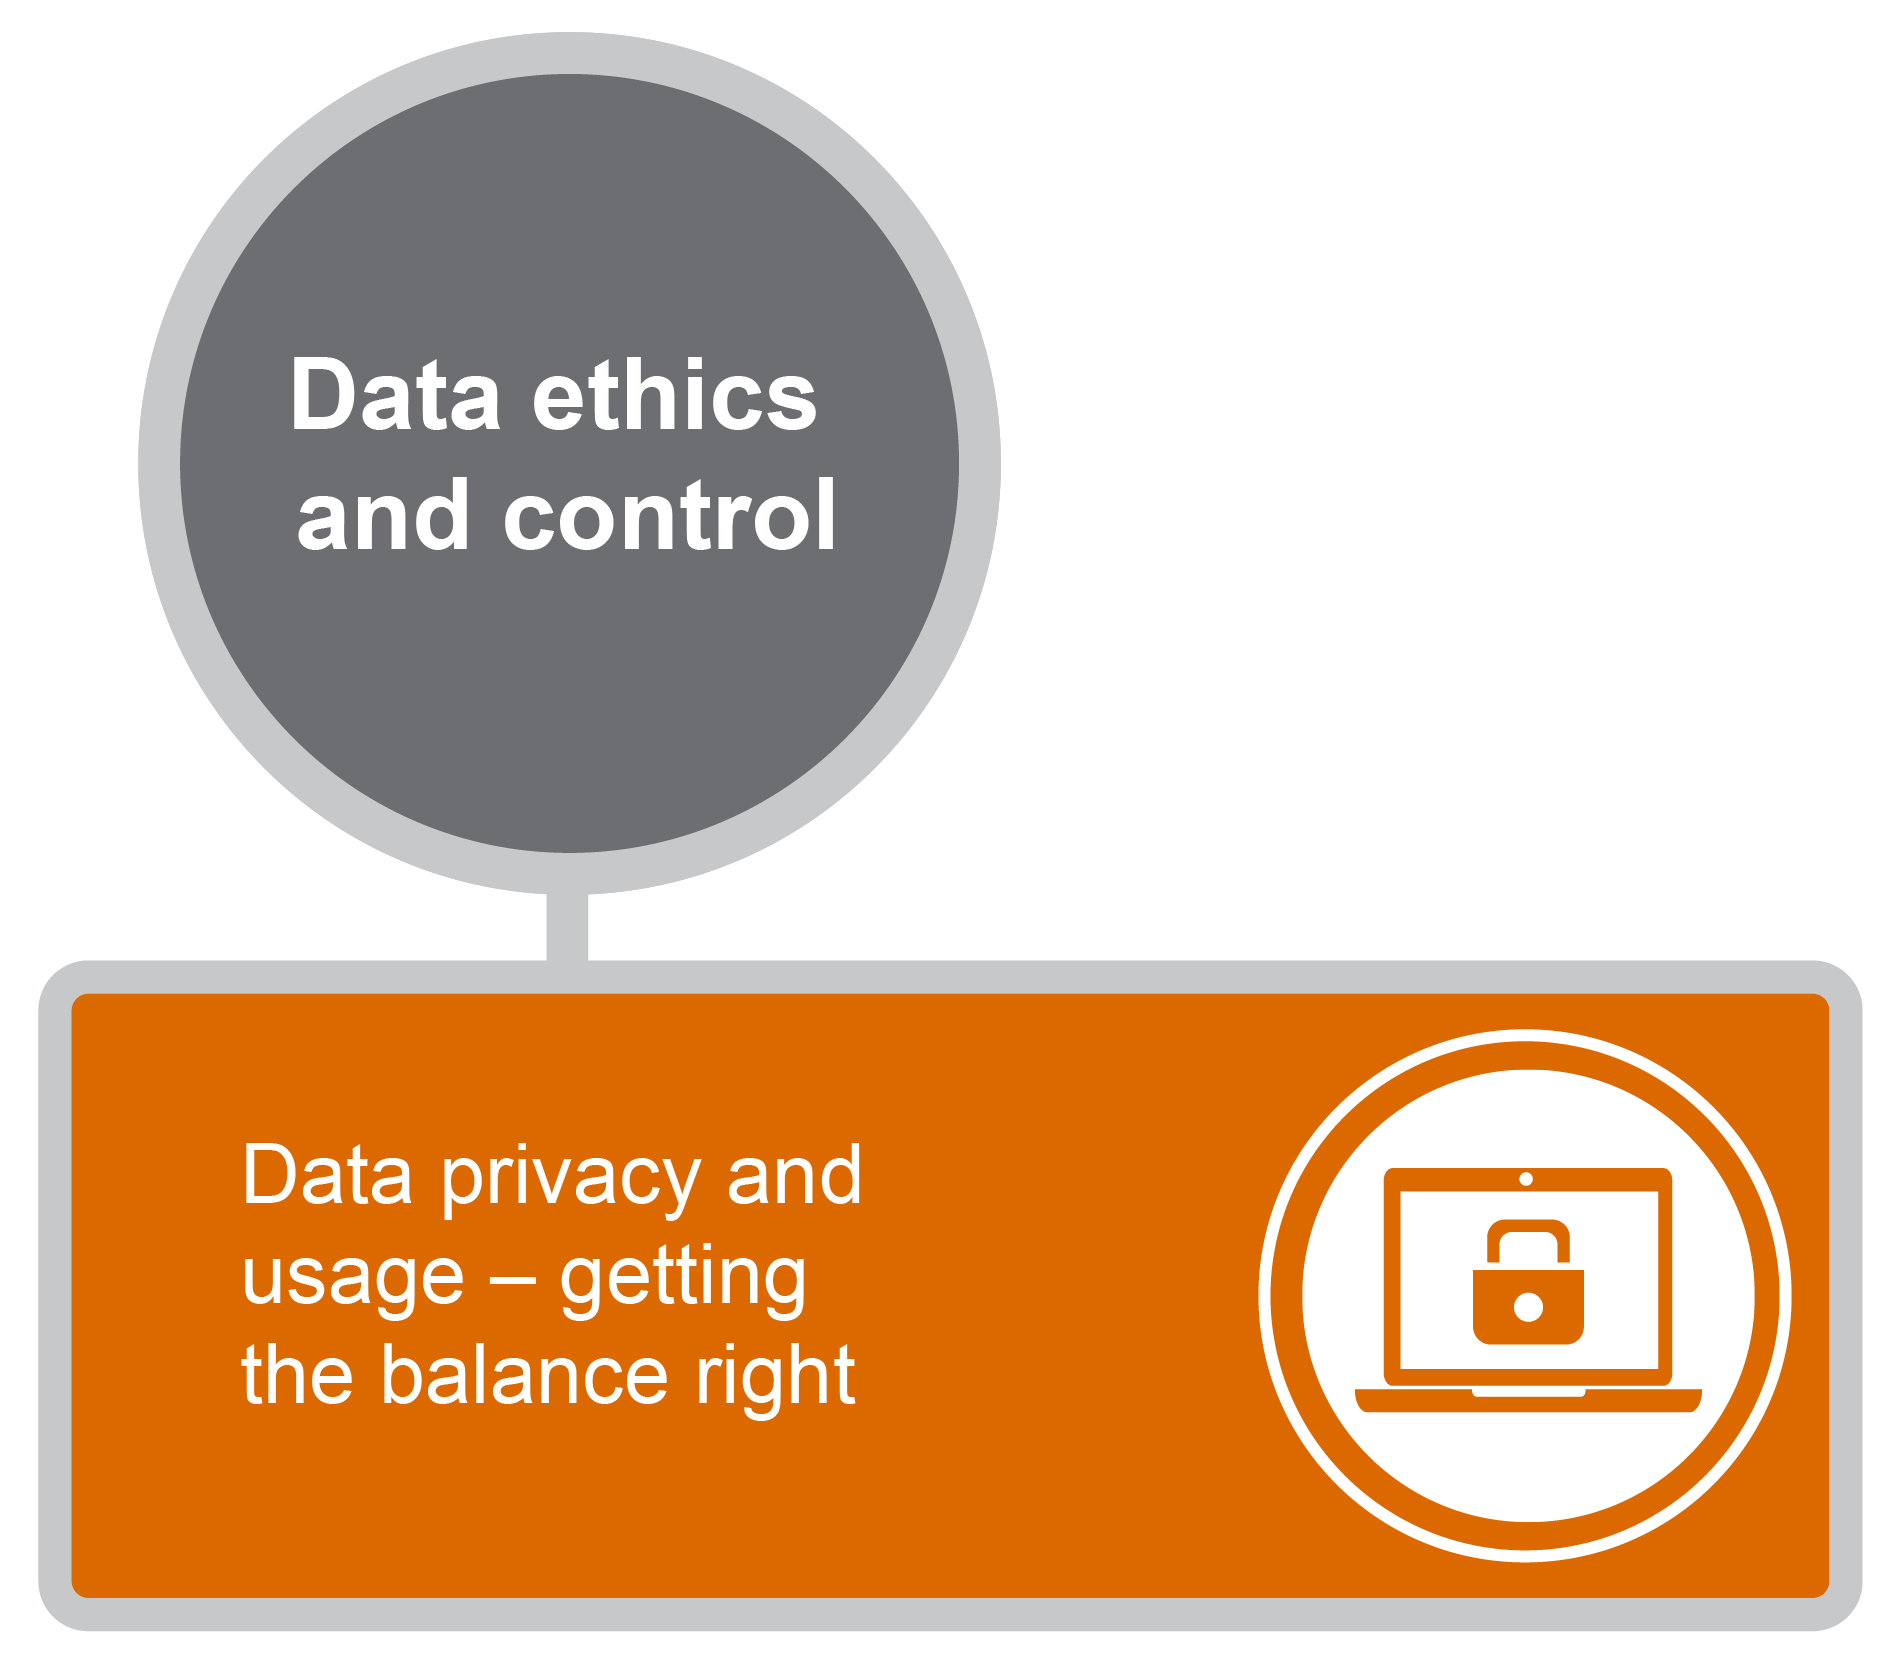 Data ethics and control graphic